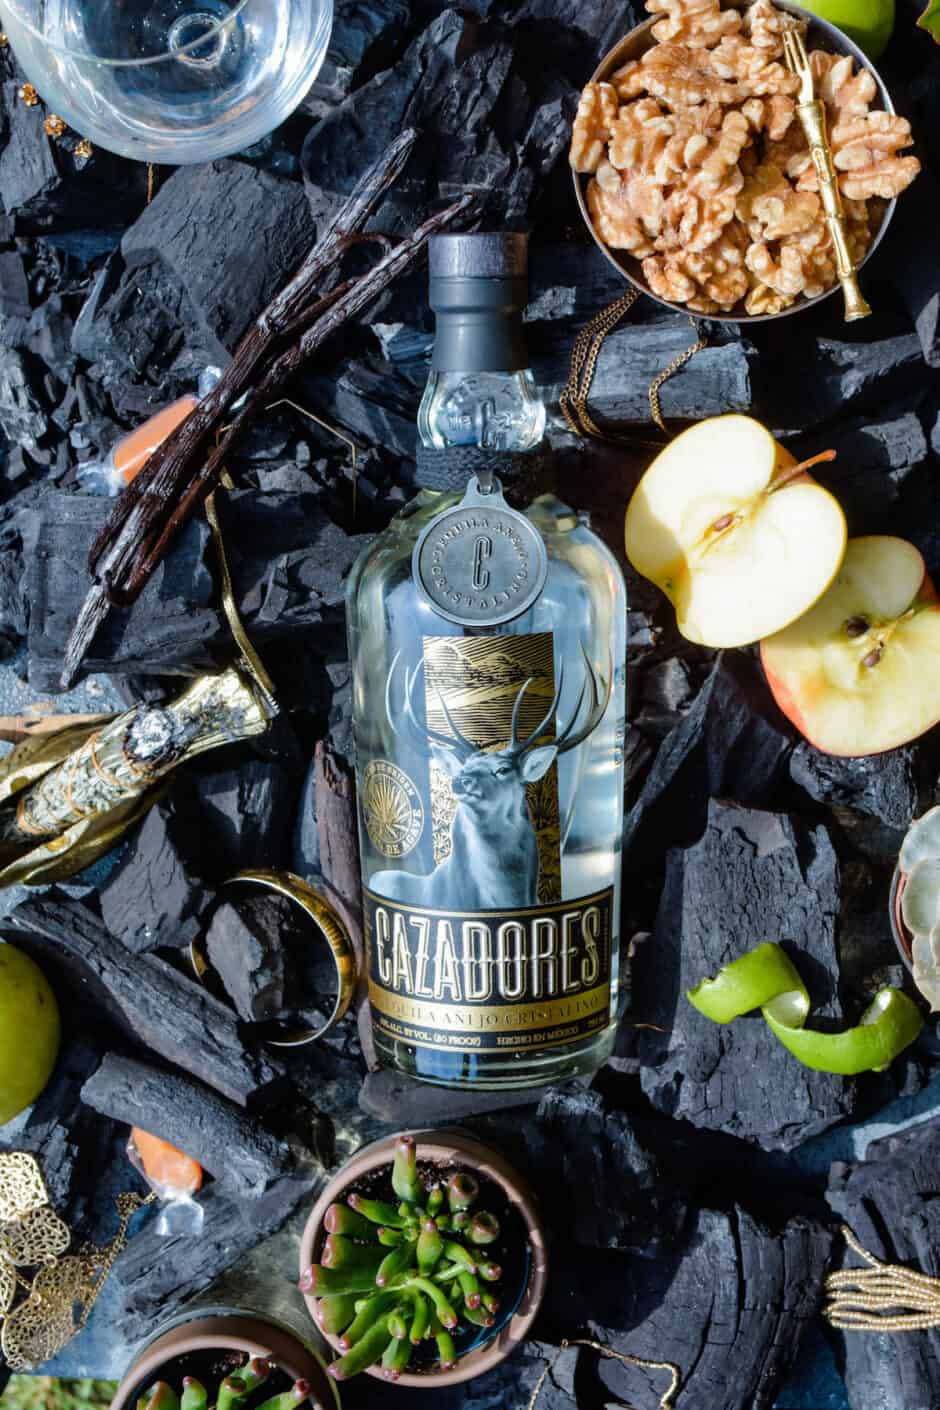 Cristalino Tequila is the newest variety of tequila to come out of Mexico and it is tremendous. An aged tequila that is crystal clear through a charcoal filtration process. Tequila Cazadores Cristalino is extraordinary. Click here to read more! {ad} #tequila #cristalinotequila #agedtequila #cazadores